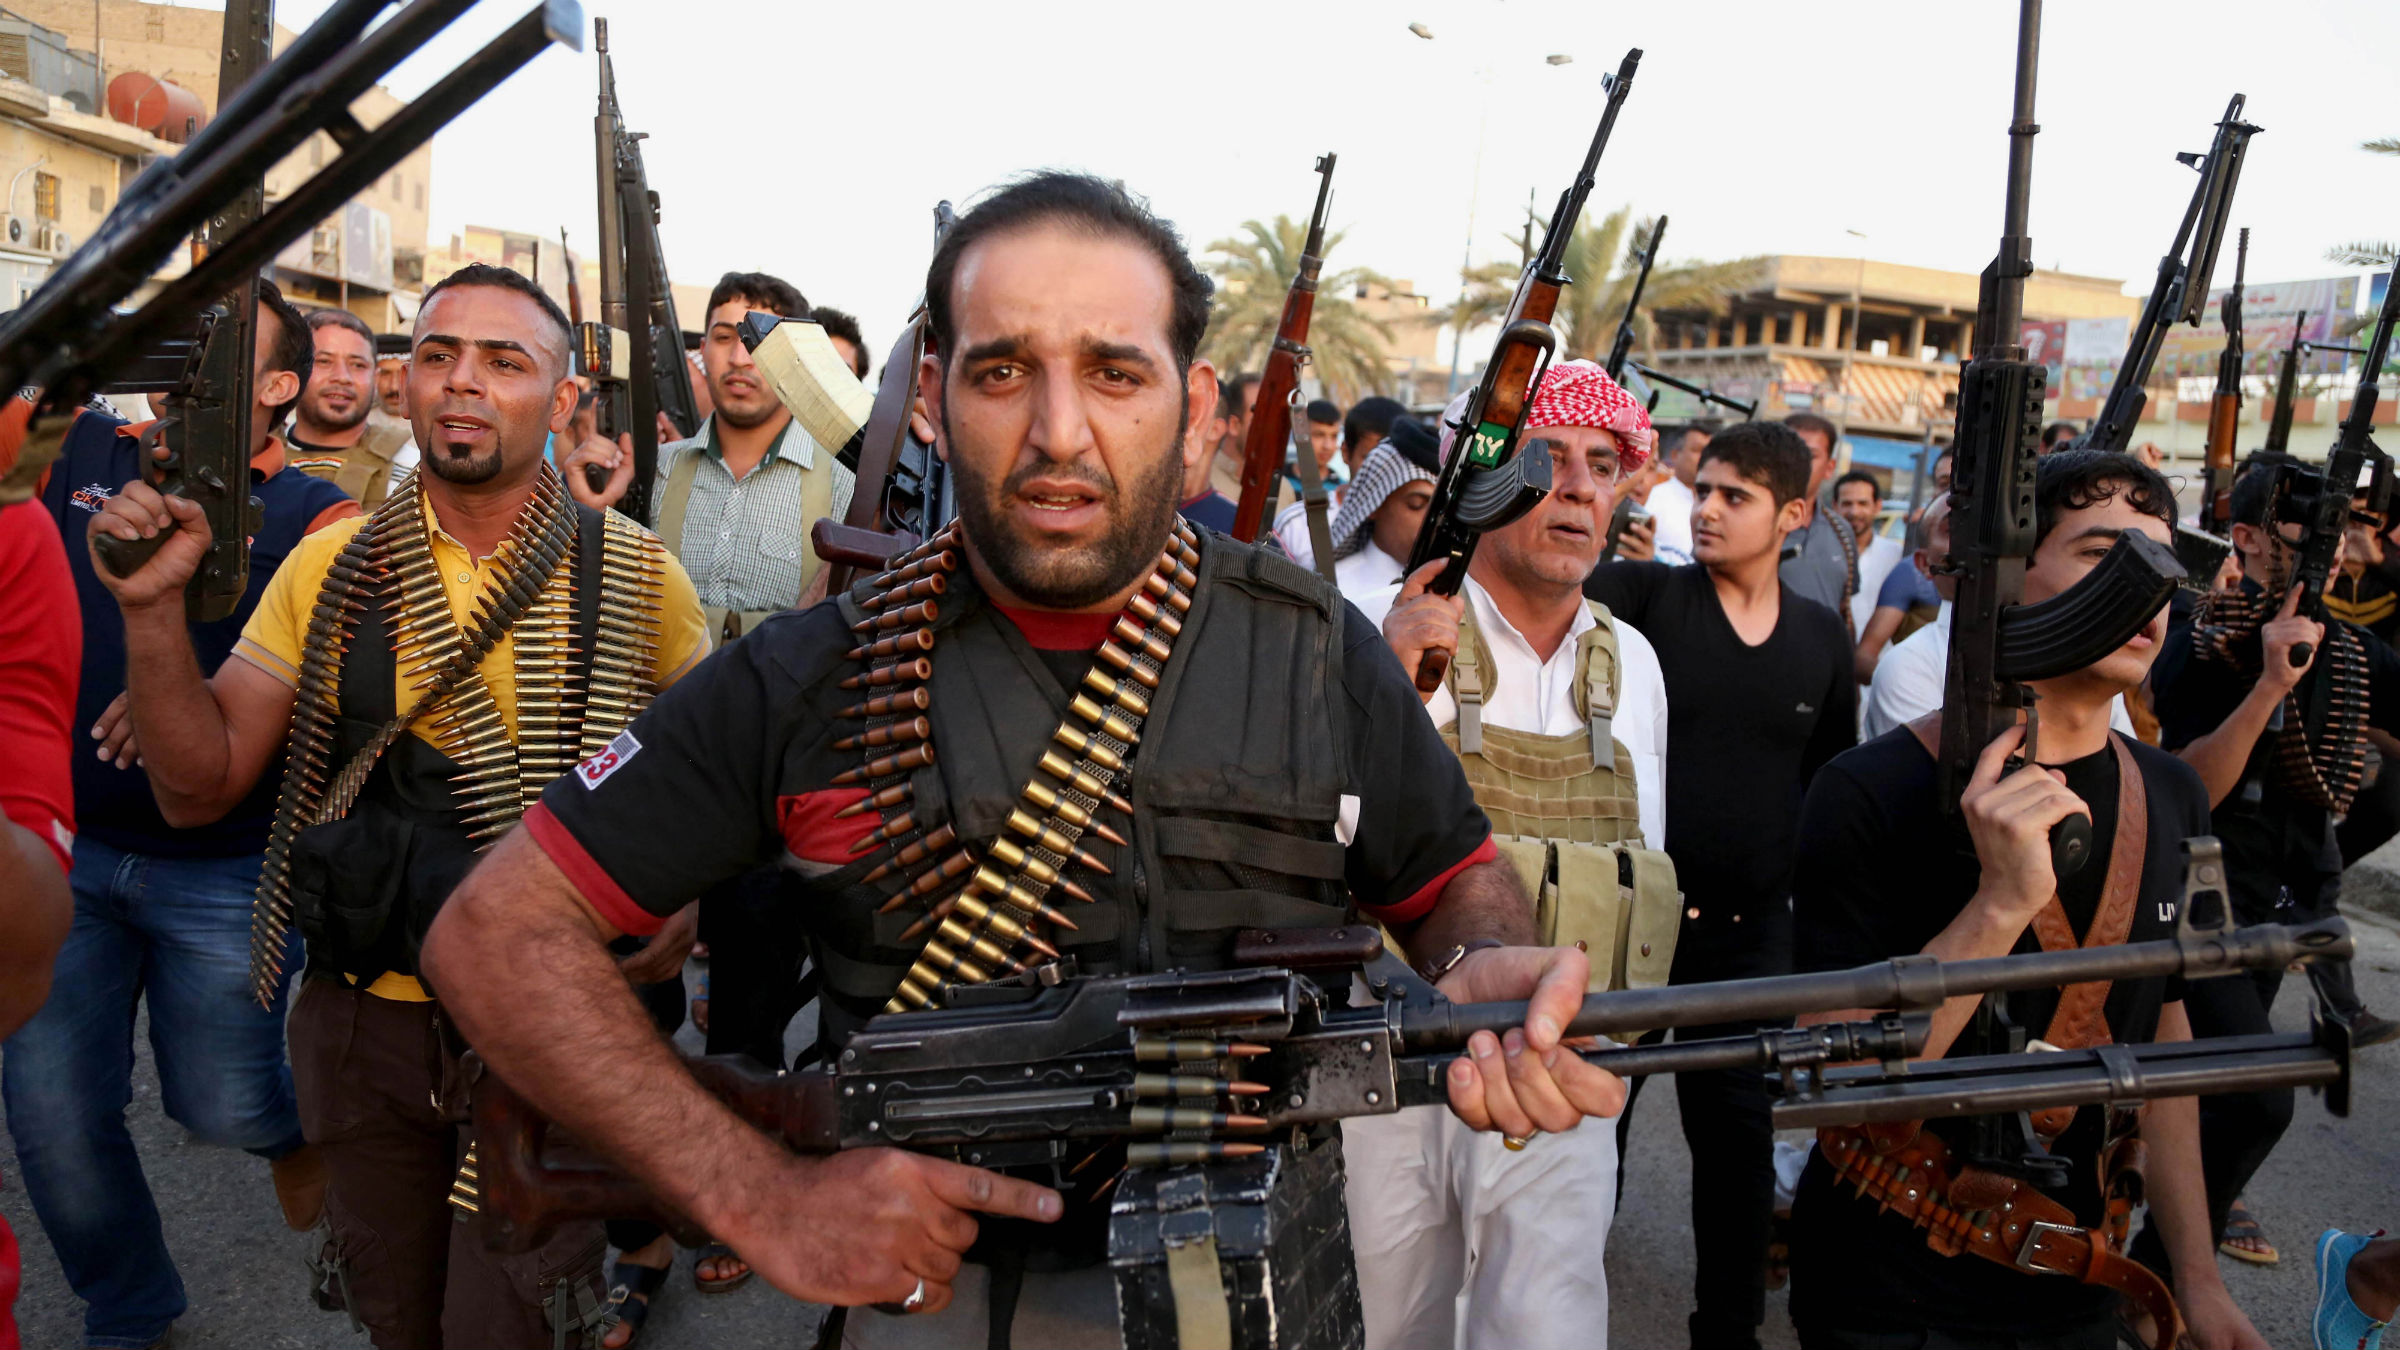 Armed protesters in Iraq